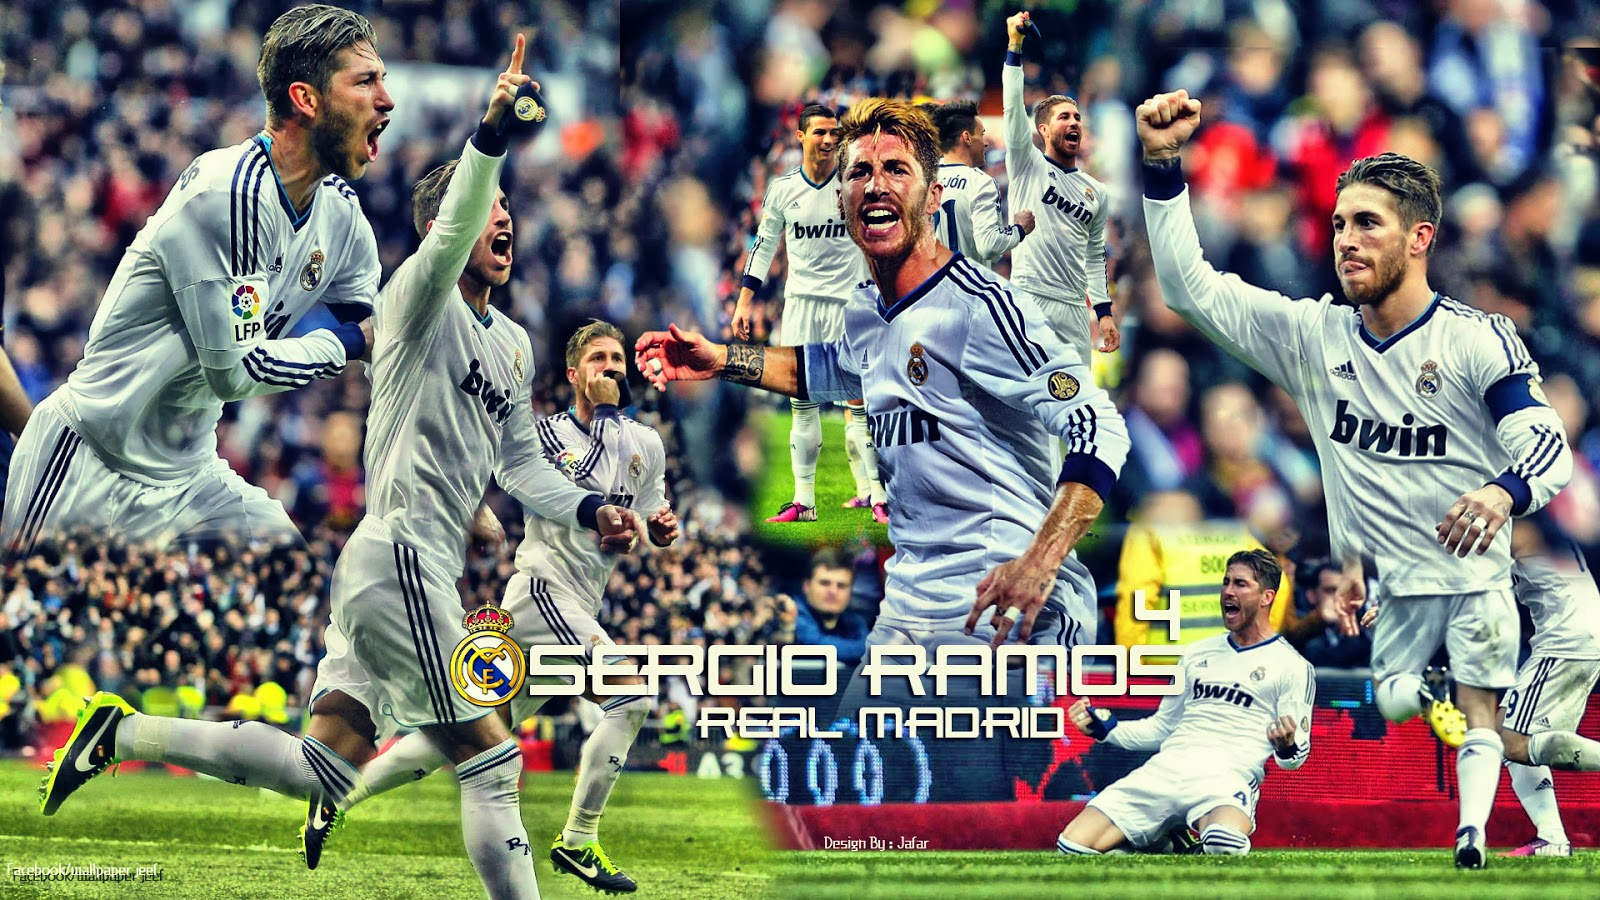 sergio ramos hd images - photo #28